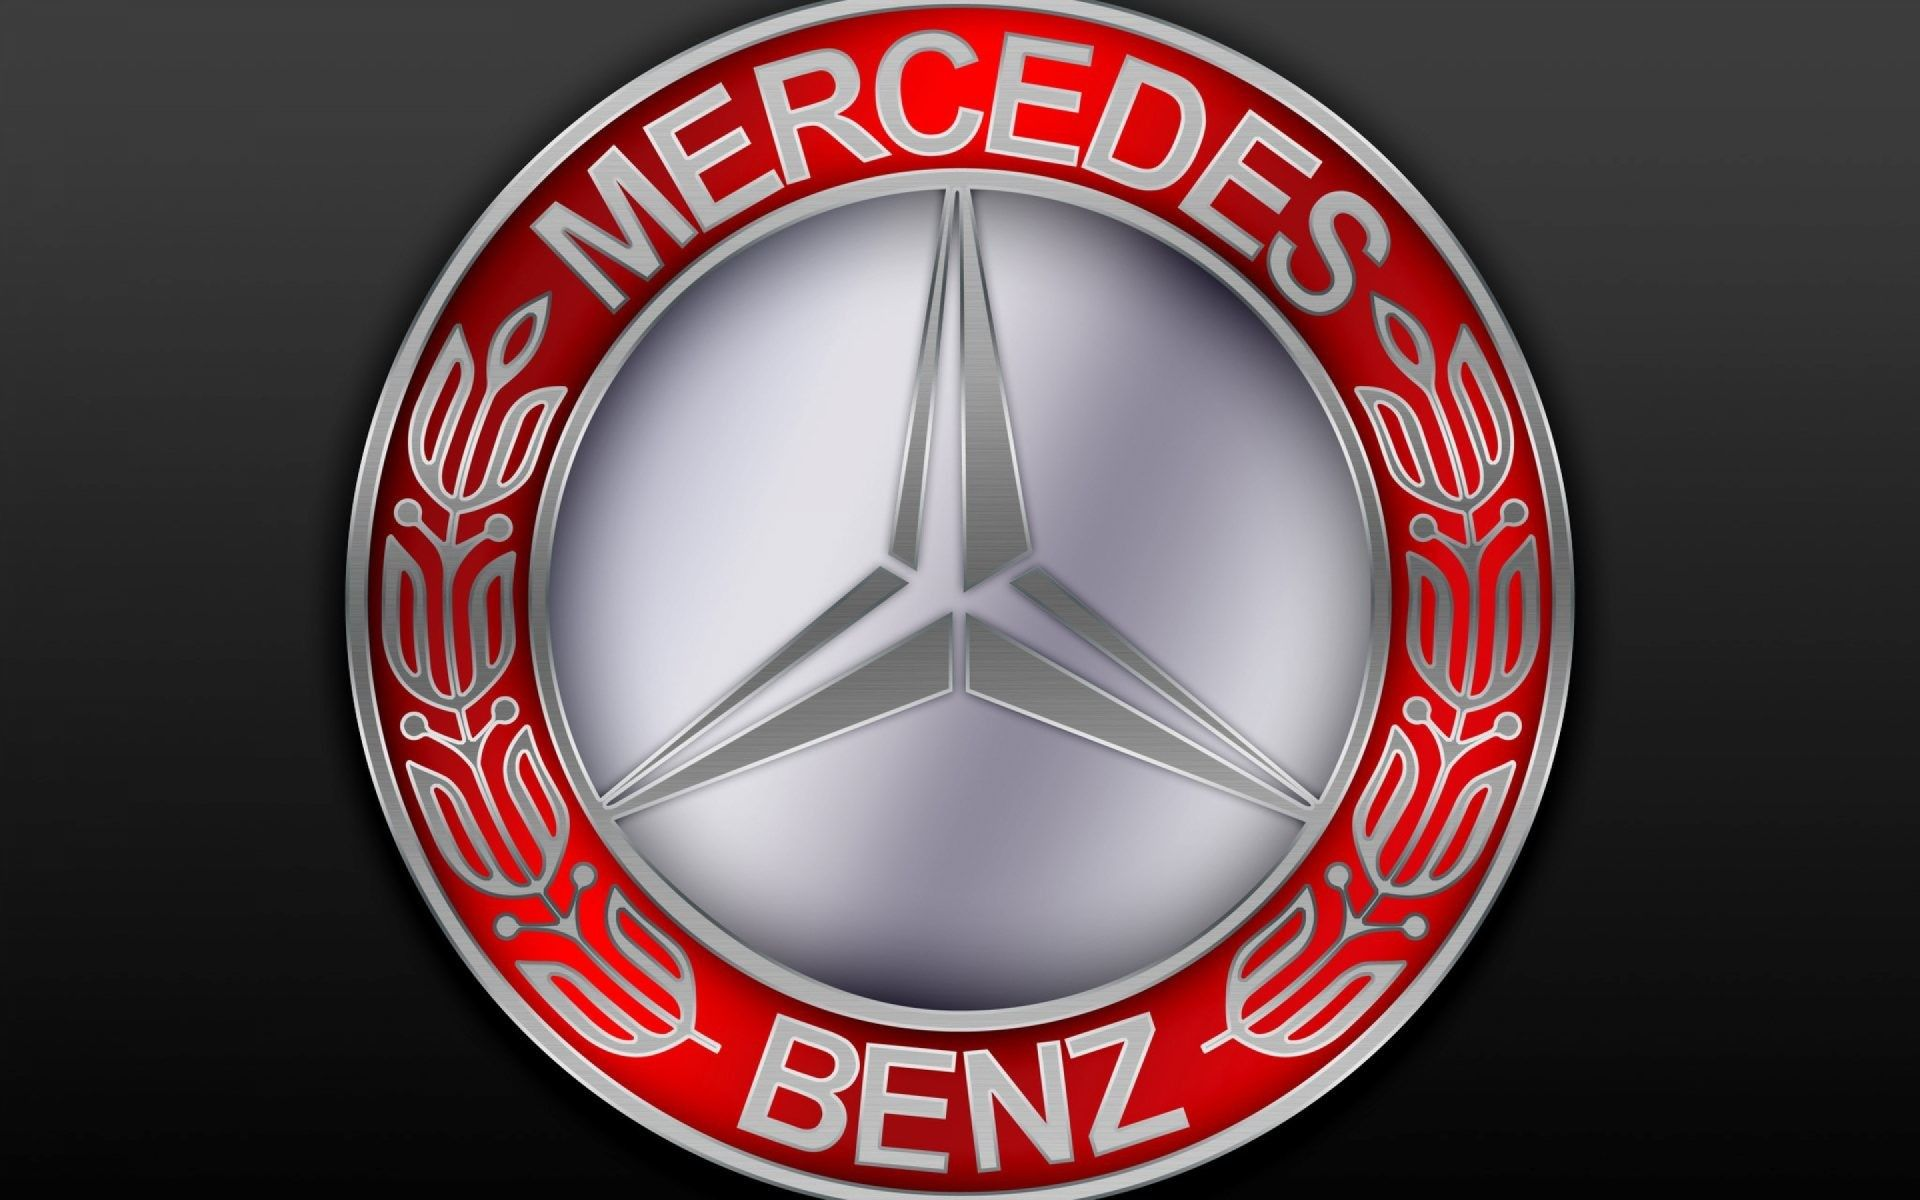 1920x1200 Mercedes Benz Logo 4k Hd Wallpaper With Images